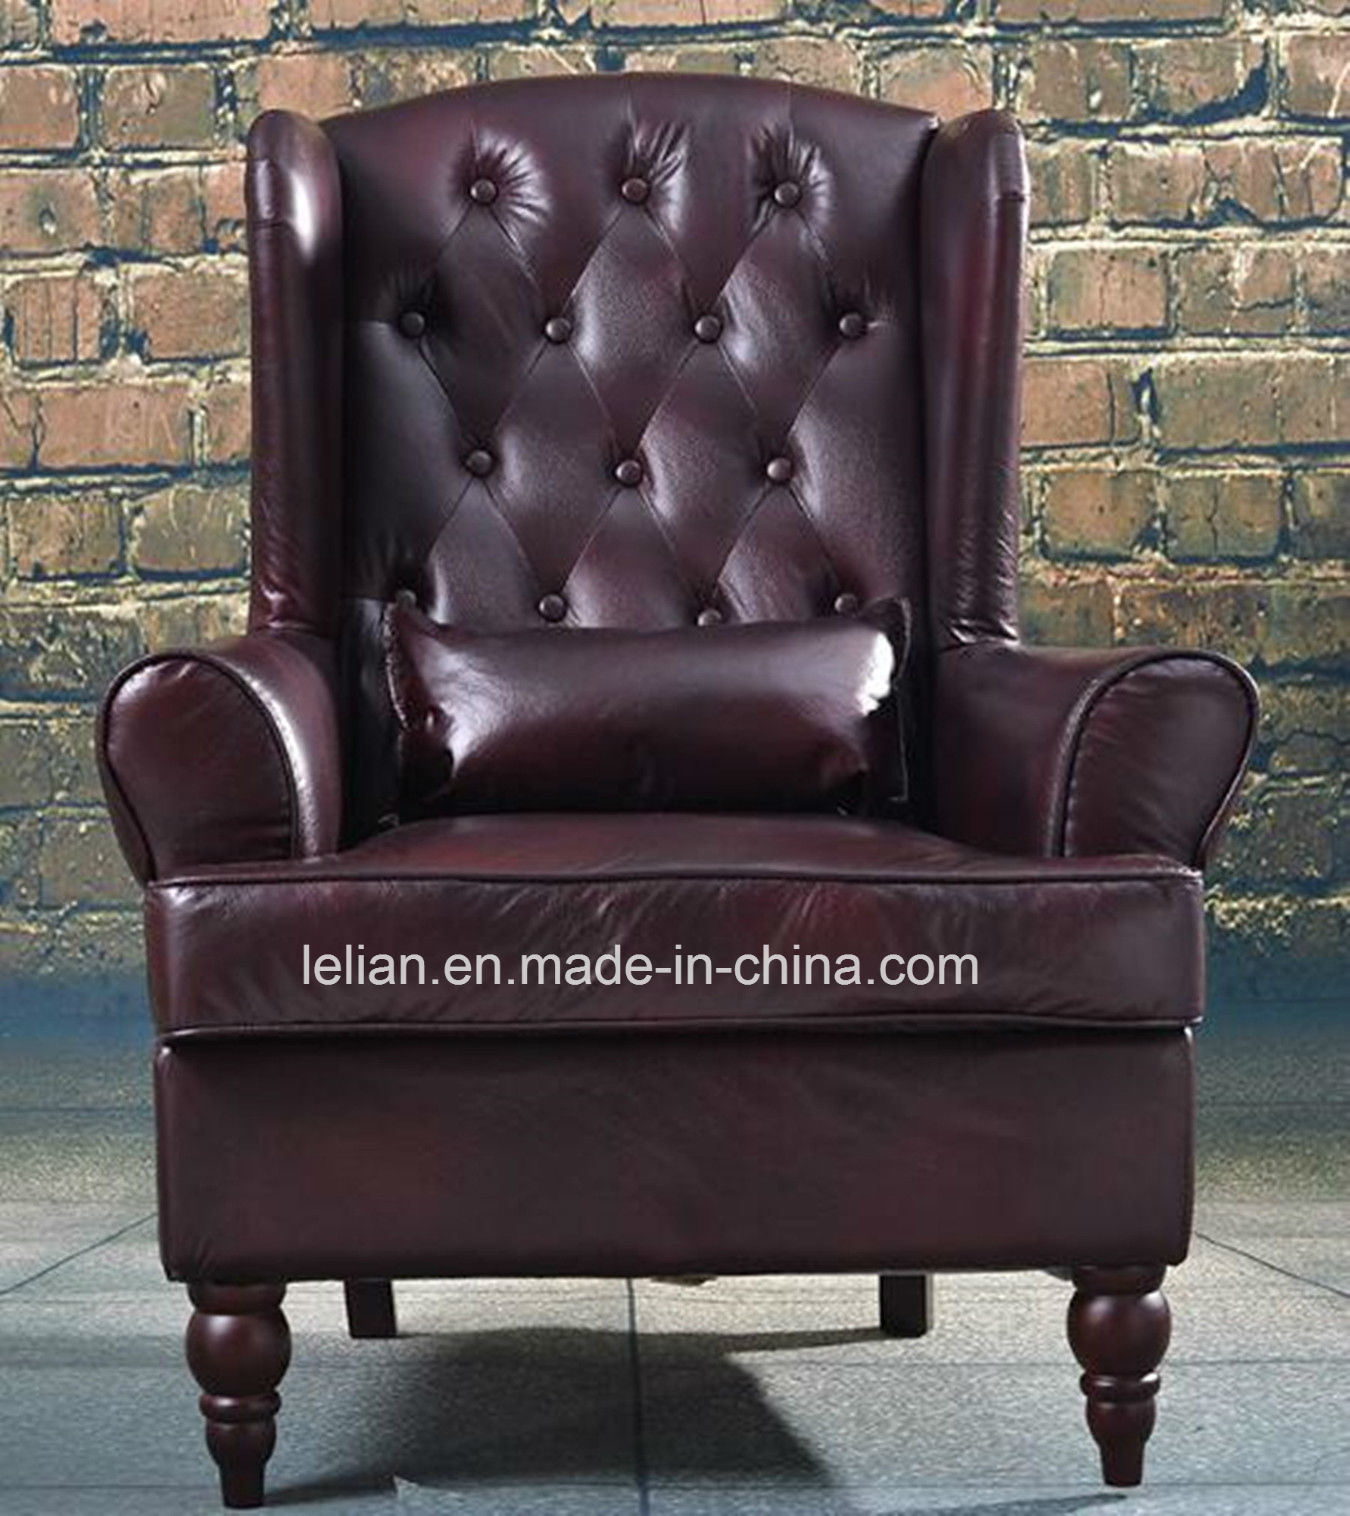 American Style Living Room Comfortable Single Seater Leisure Sofa Chair (LL-BC080)